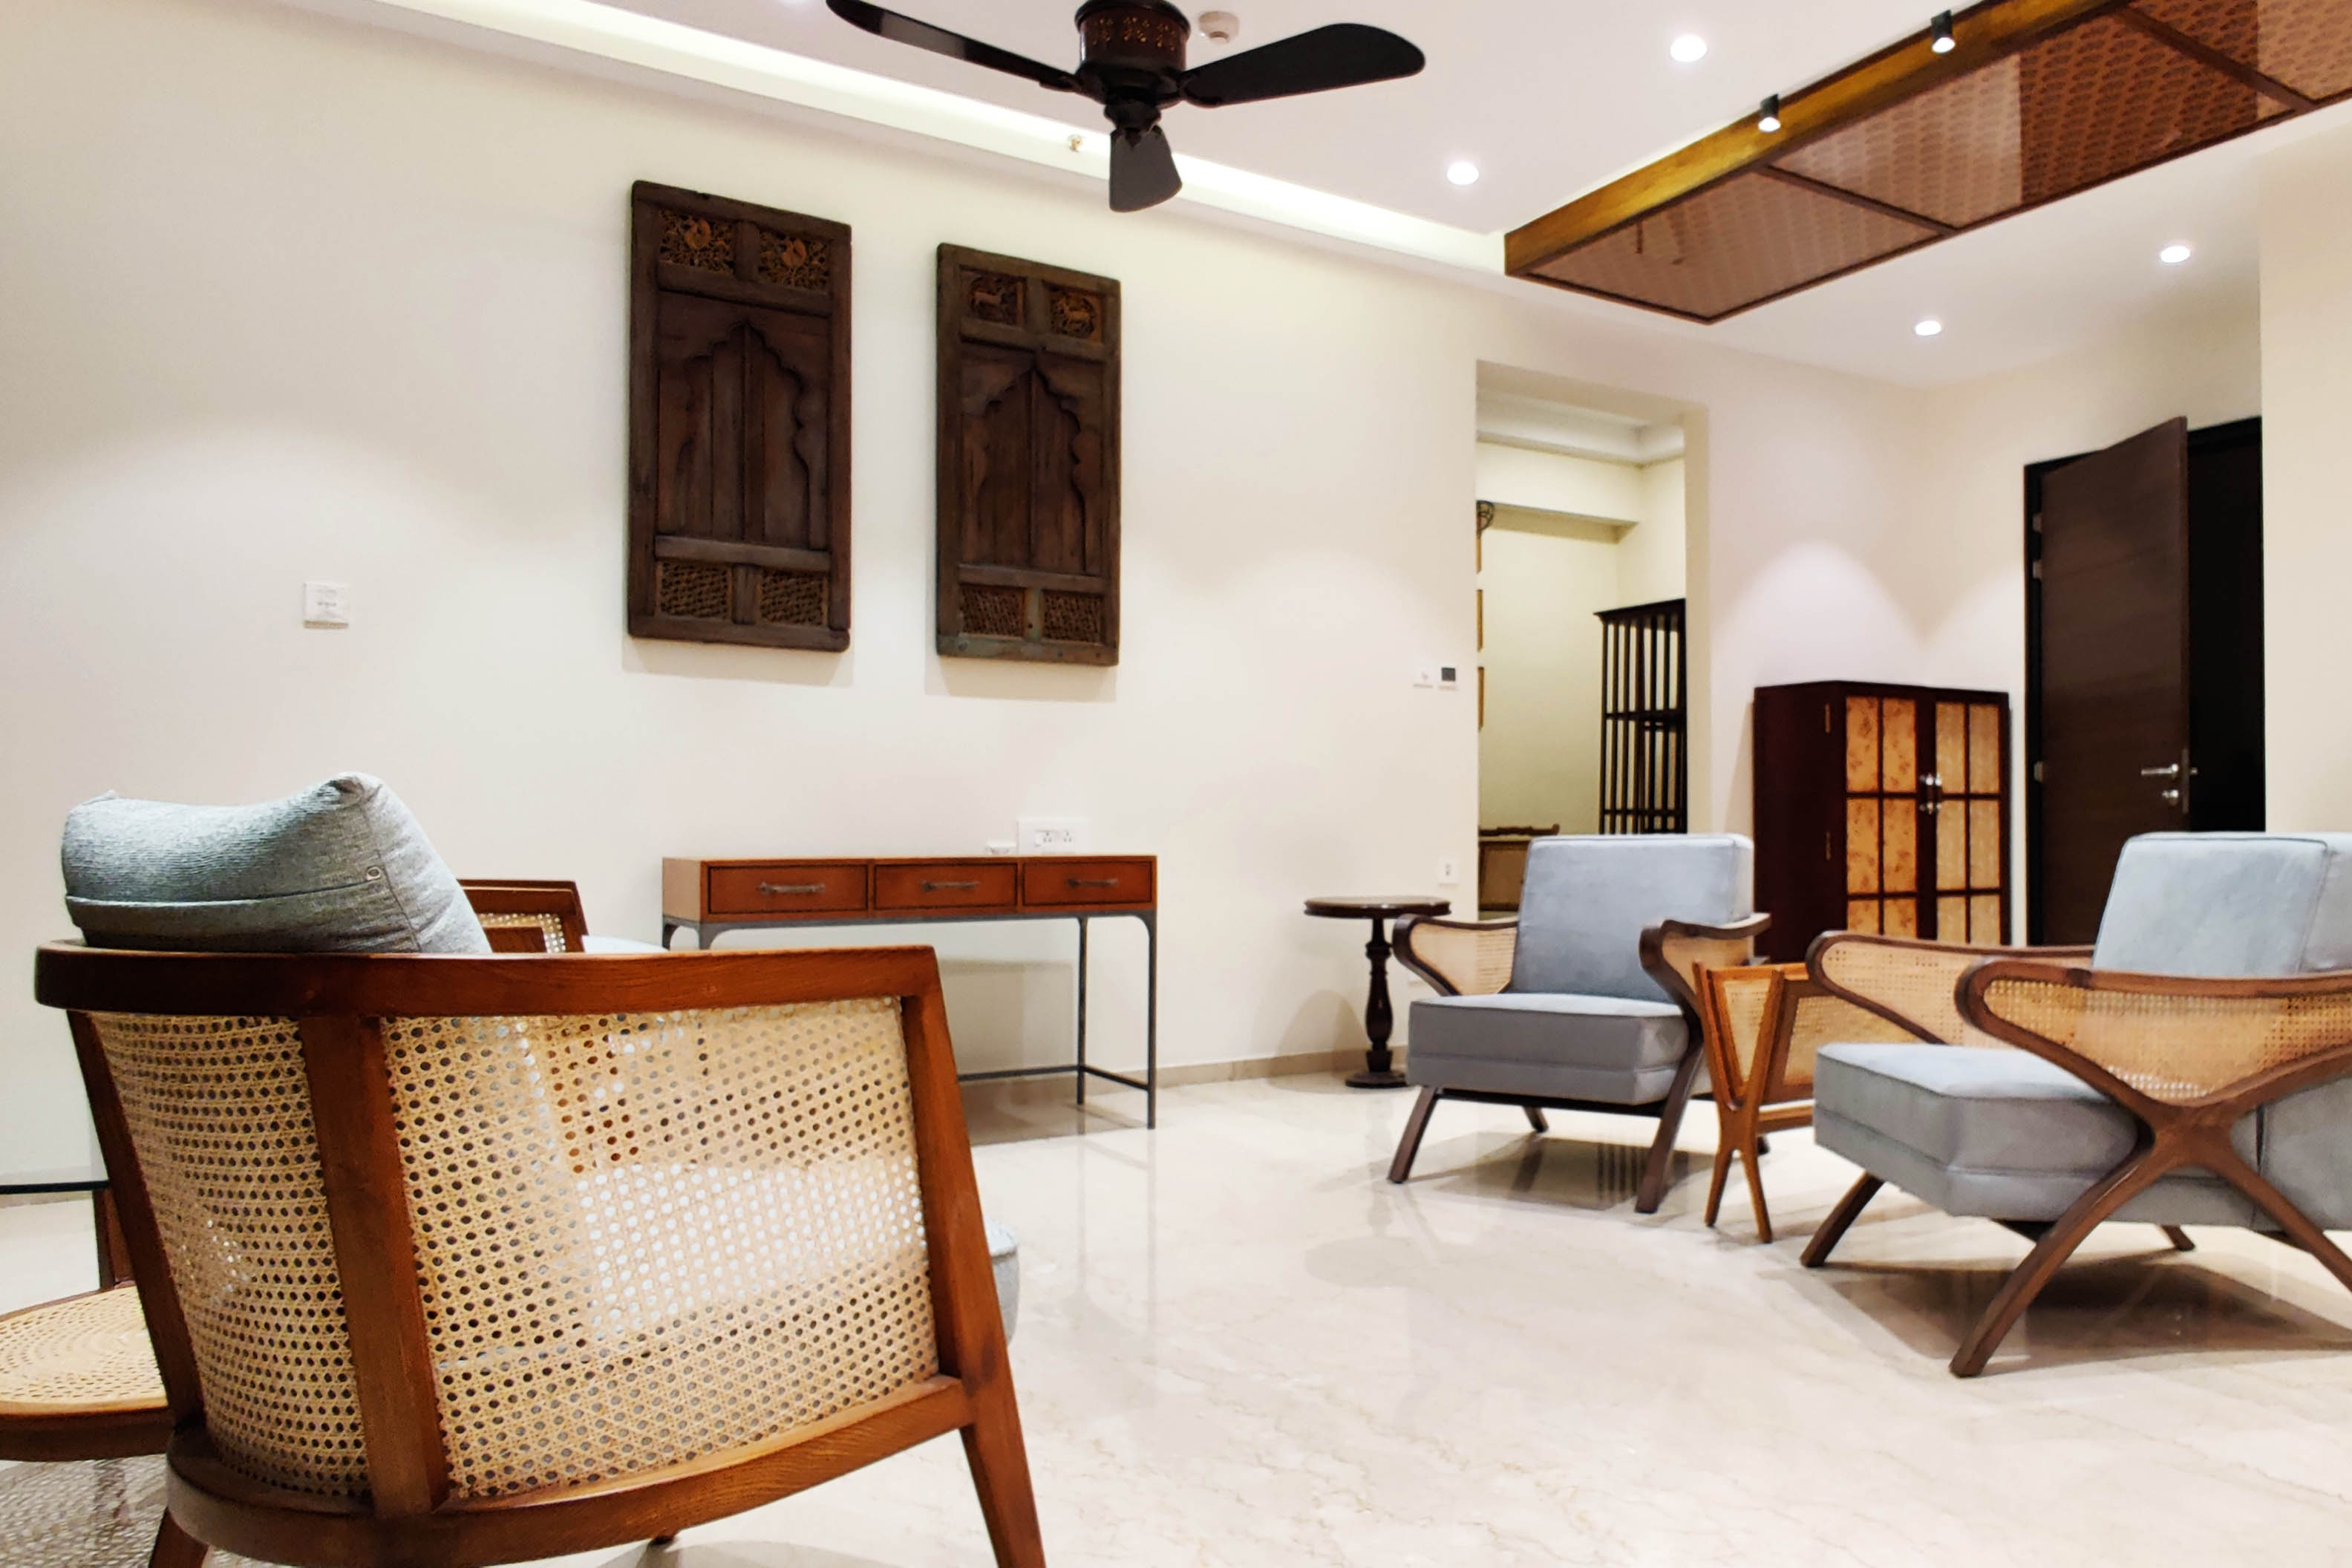 Tradition furniture in a luxurious living room, for the 5bhk apartment in J.P. nagar bangalore